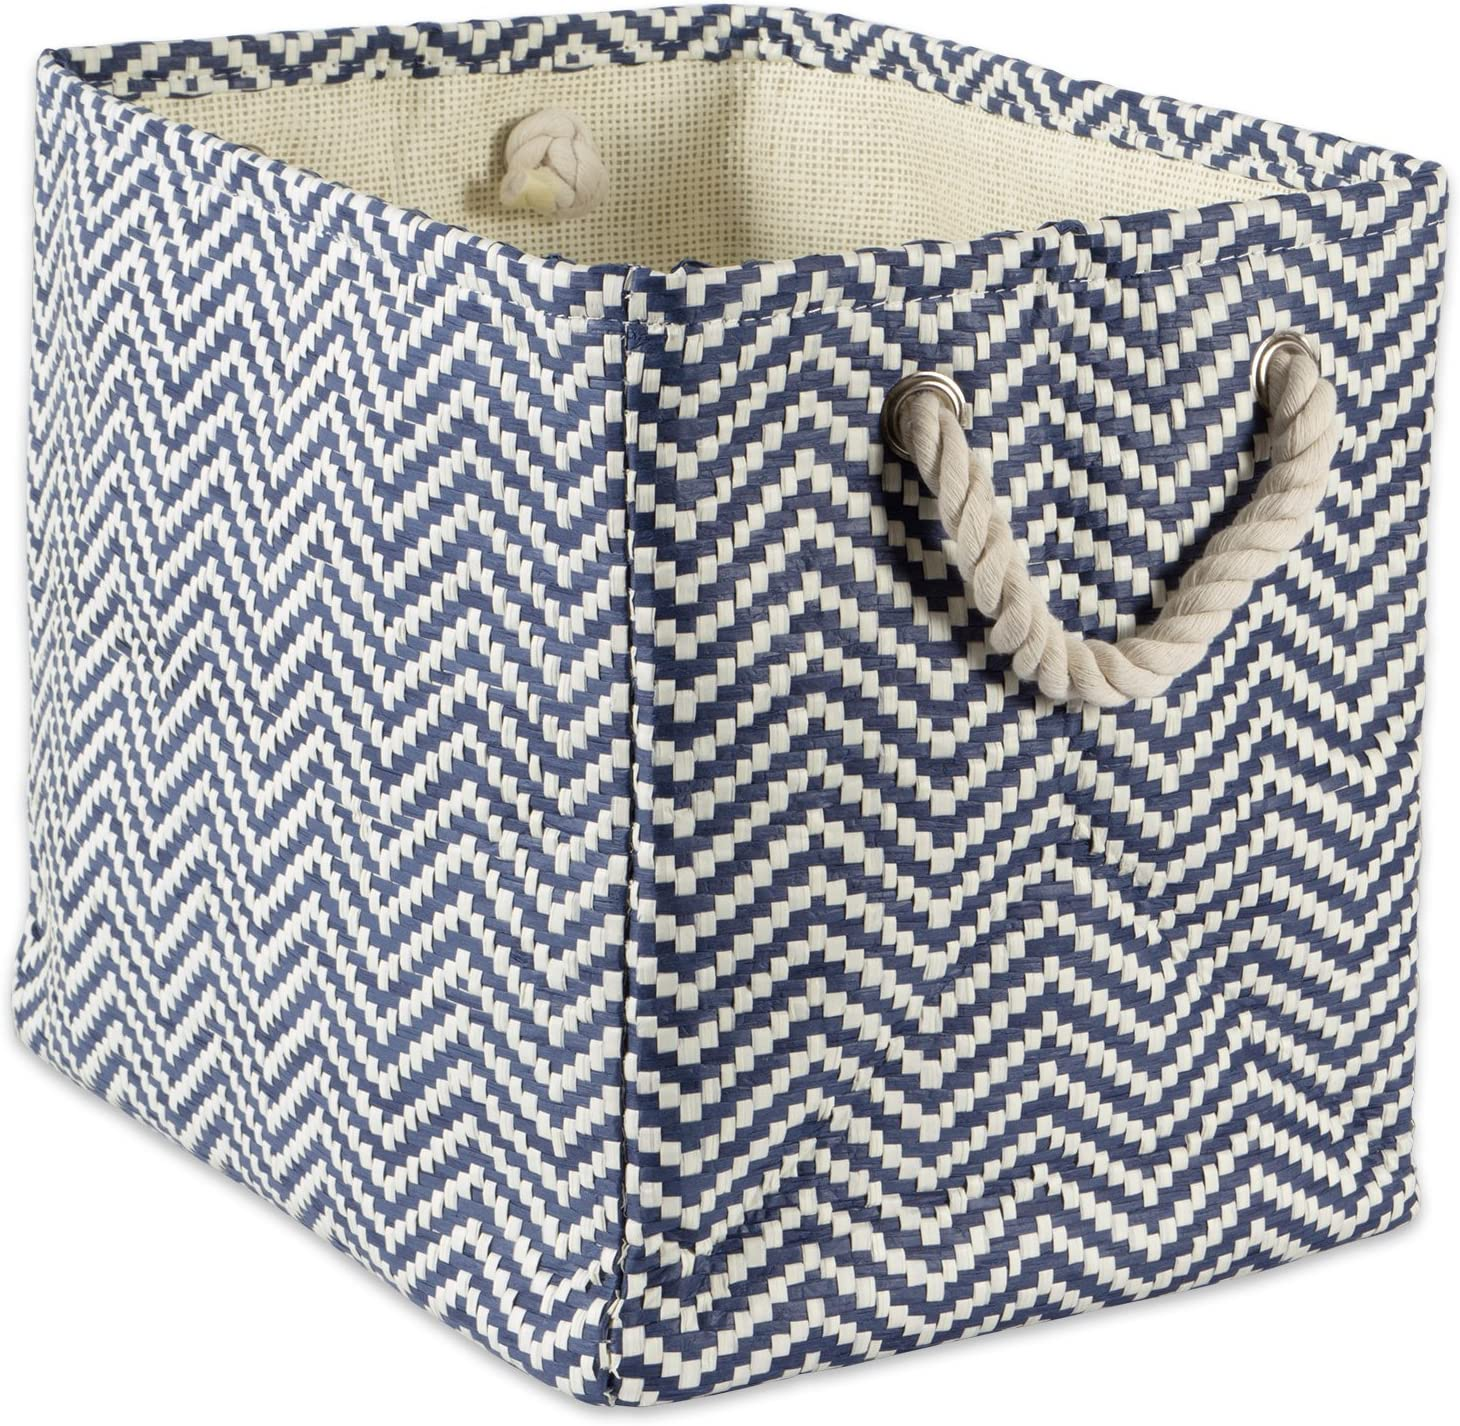 "DII Woven Paper Storage Basket or Bin, Collapsible & Convenient Home Organization Solution for Office, Bedroom, Closet, Toys, & Laundry (Medium – 15x10x12""), Nautical Blue Chevron"